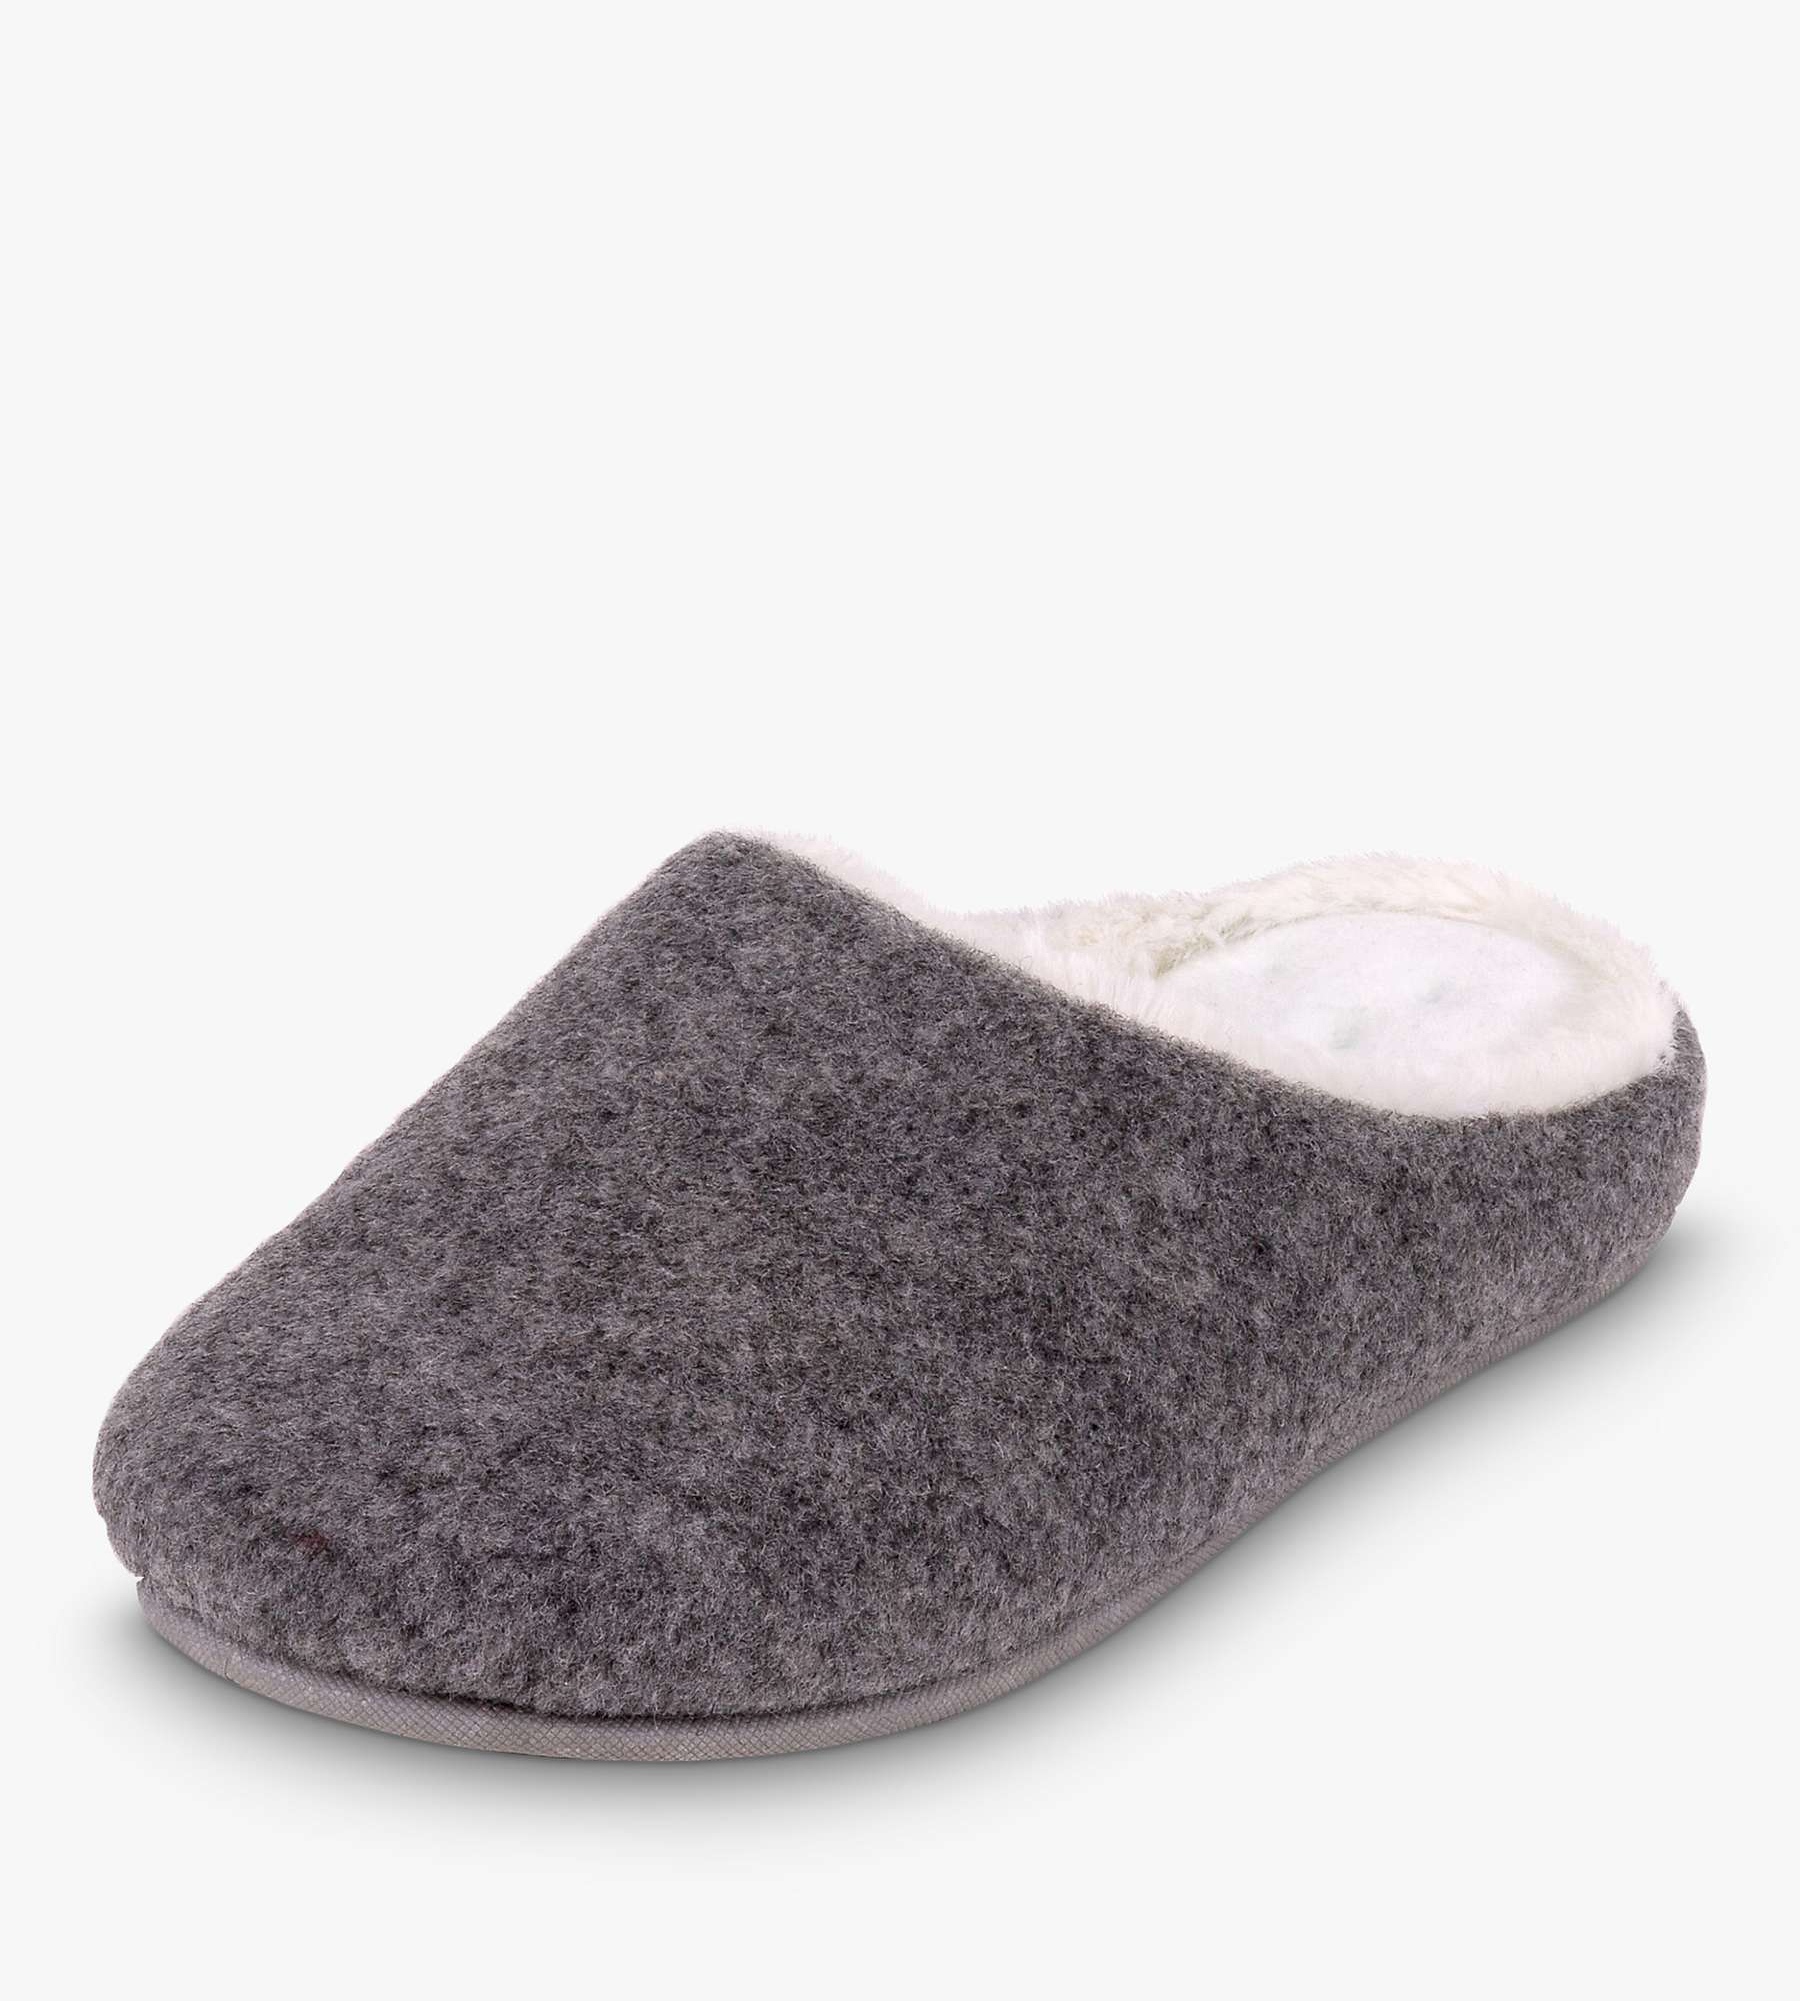 John Lewis & Partners Totes Fur Lined Clog slippers £24